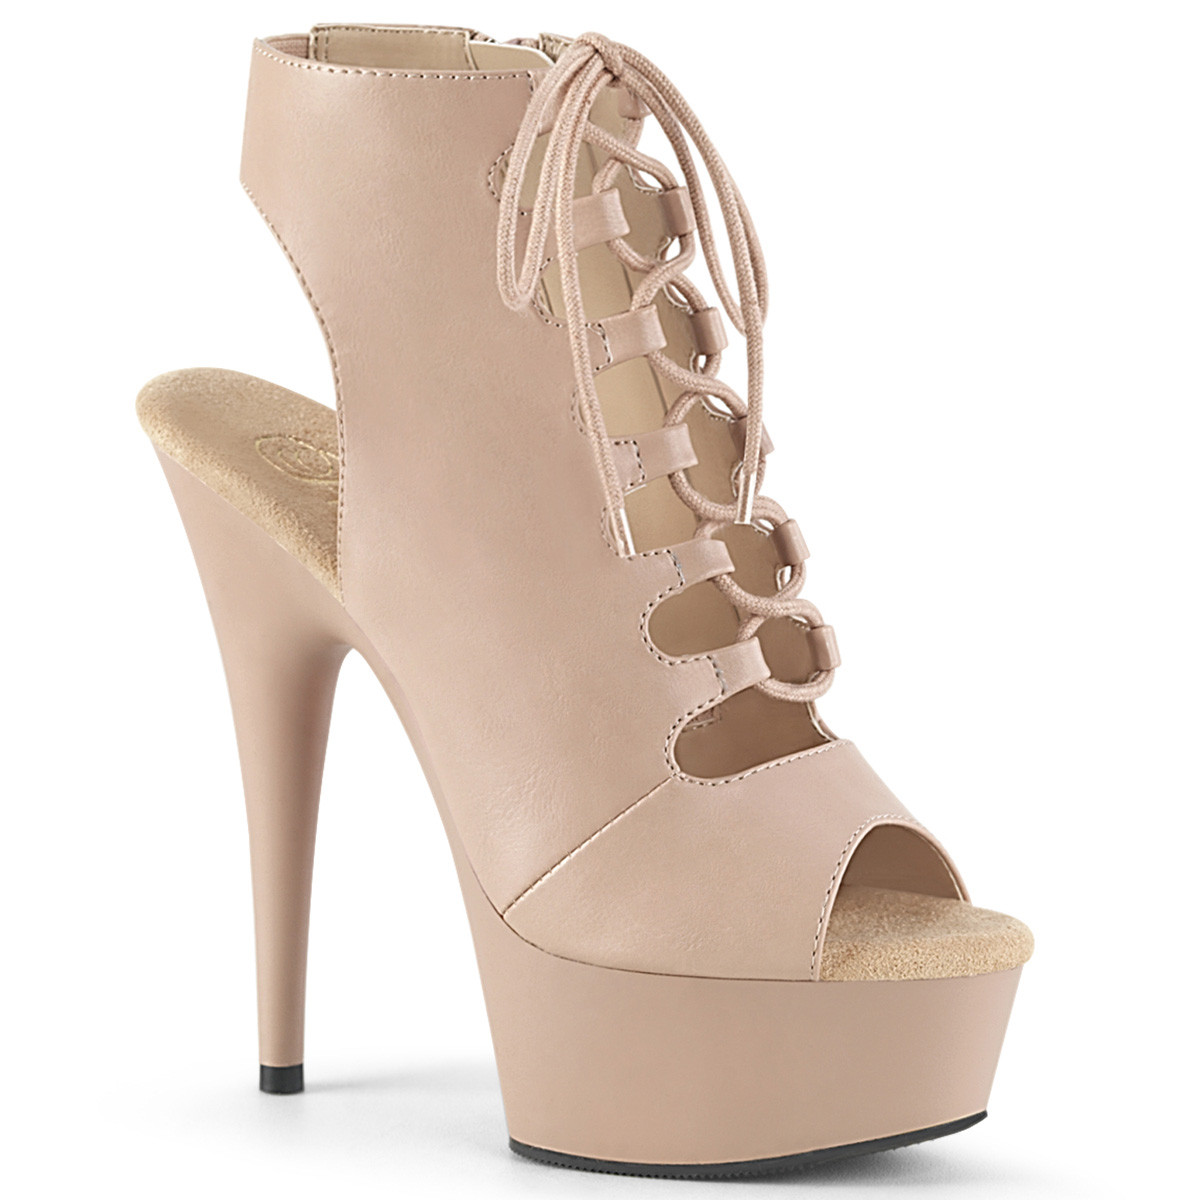 "6"" Heel Beige Lace-Up Ankle Boot*"